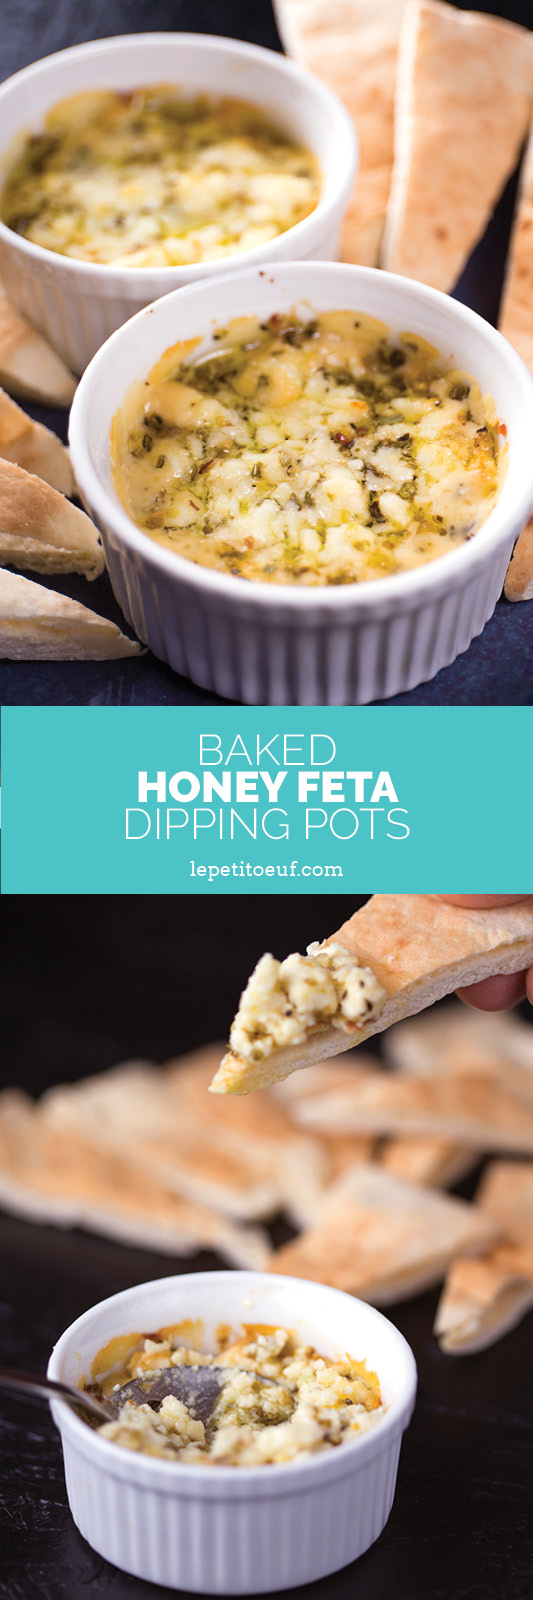 baked honey feta dipping pots